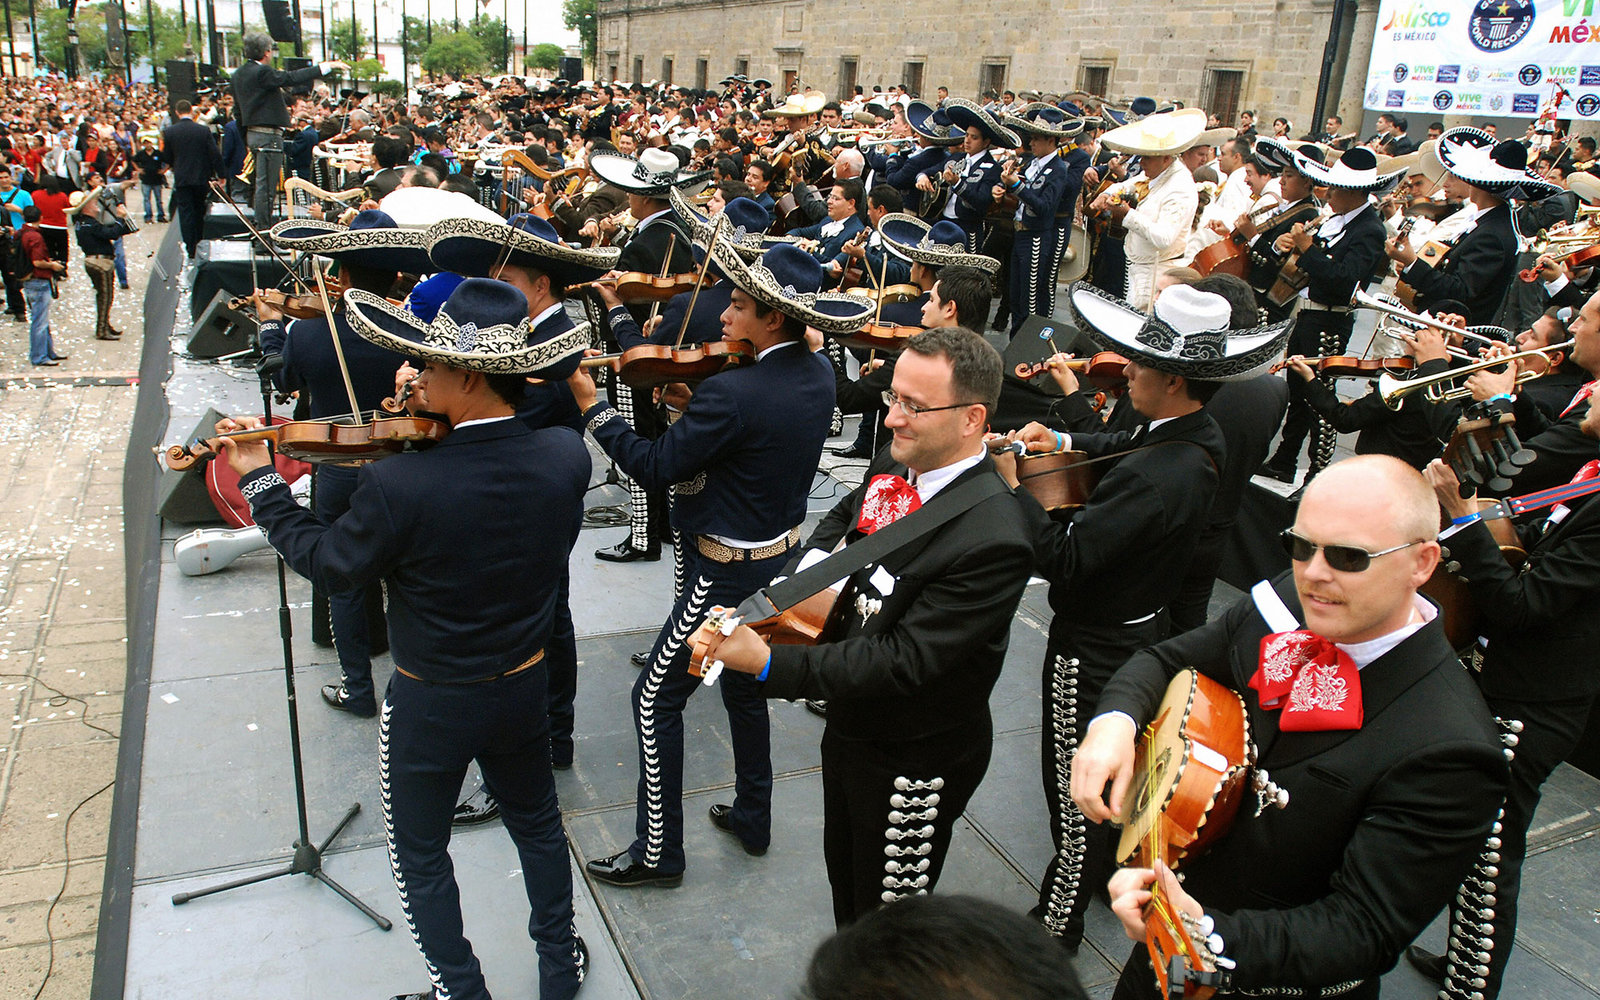 View of part of the 549  Mariachis  who performed to break the Guinness World Record of  Mariachis  playing at the same time on August 30, 2009 in Guadalajara, Mexico in the framework of the Mariachi's International Festival.  AFP PHOTO/Ivan Garcia (Photo